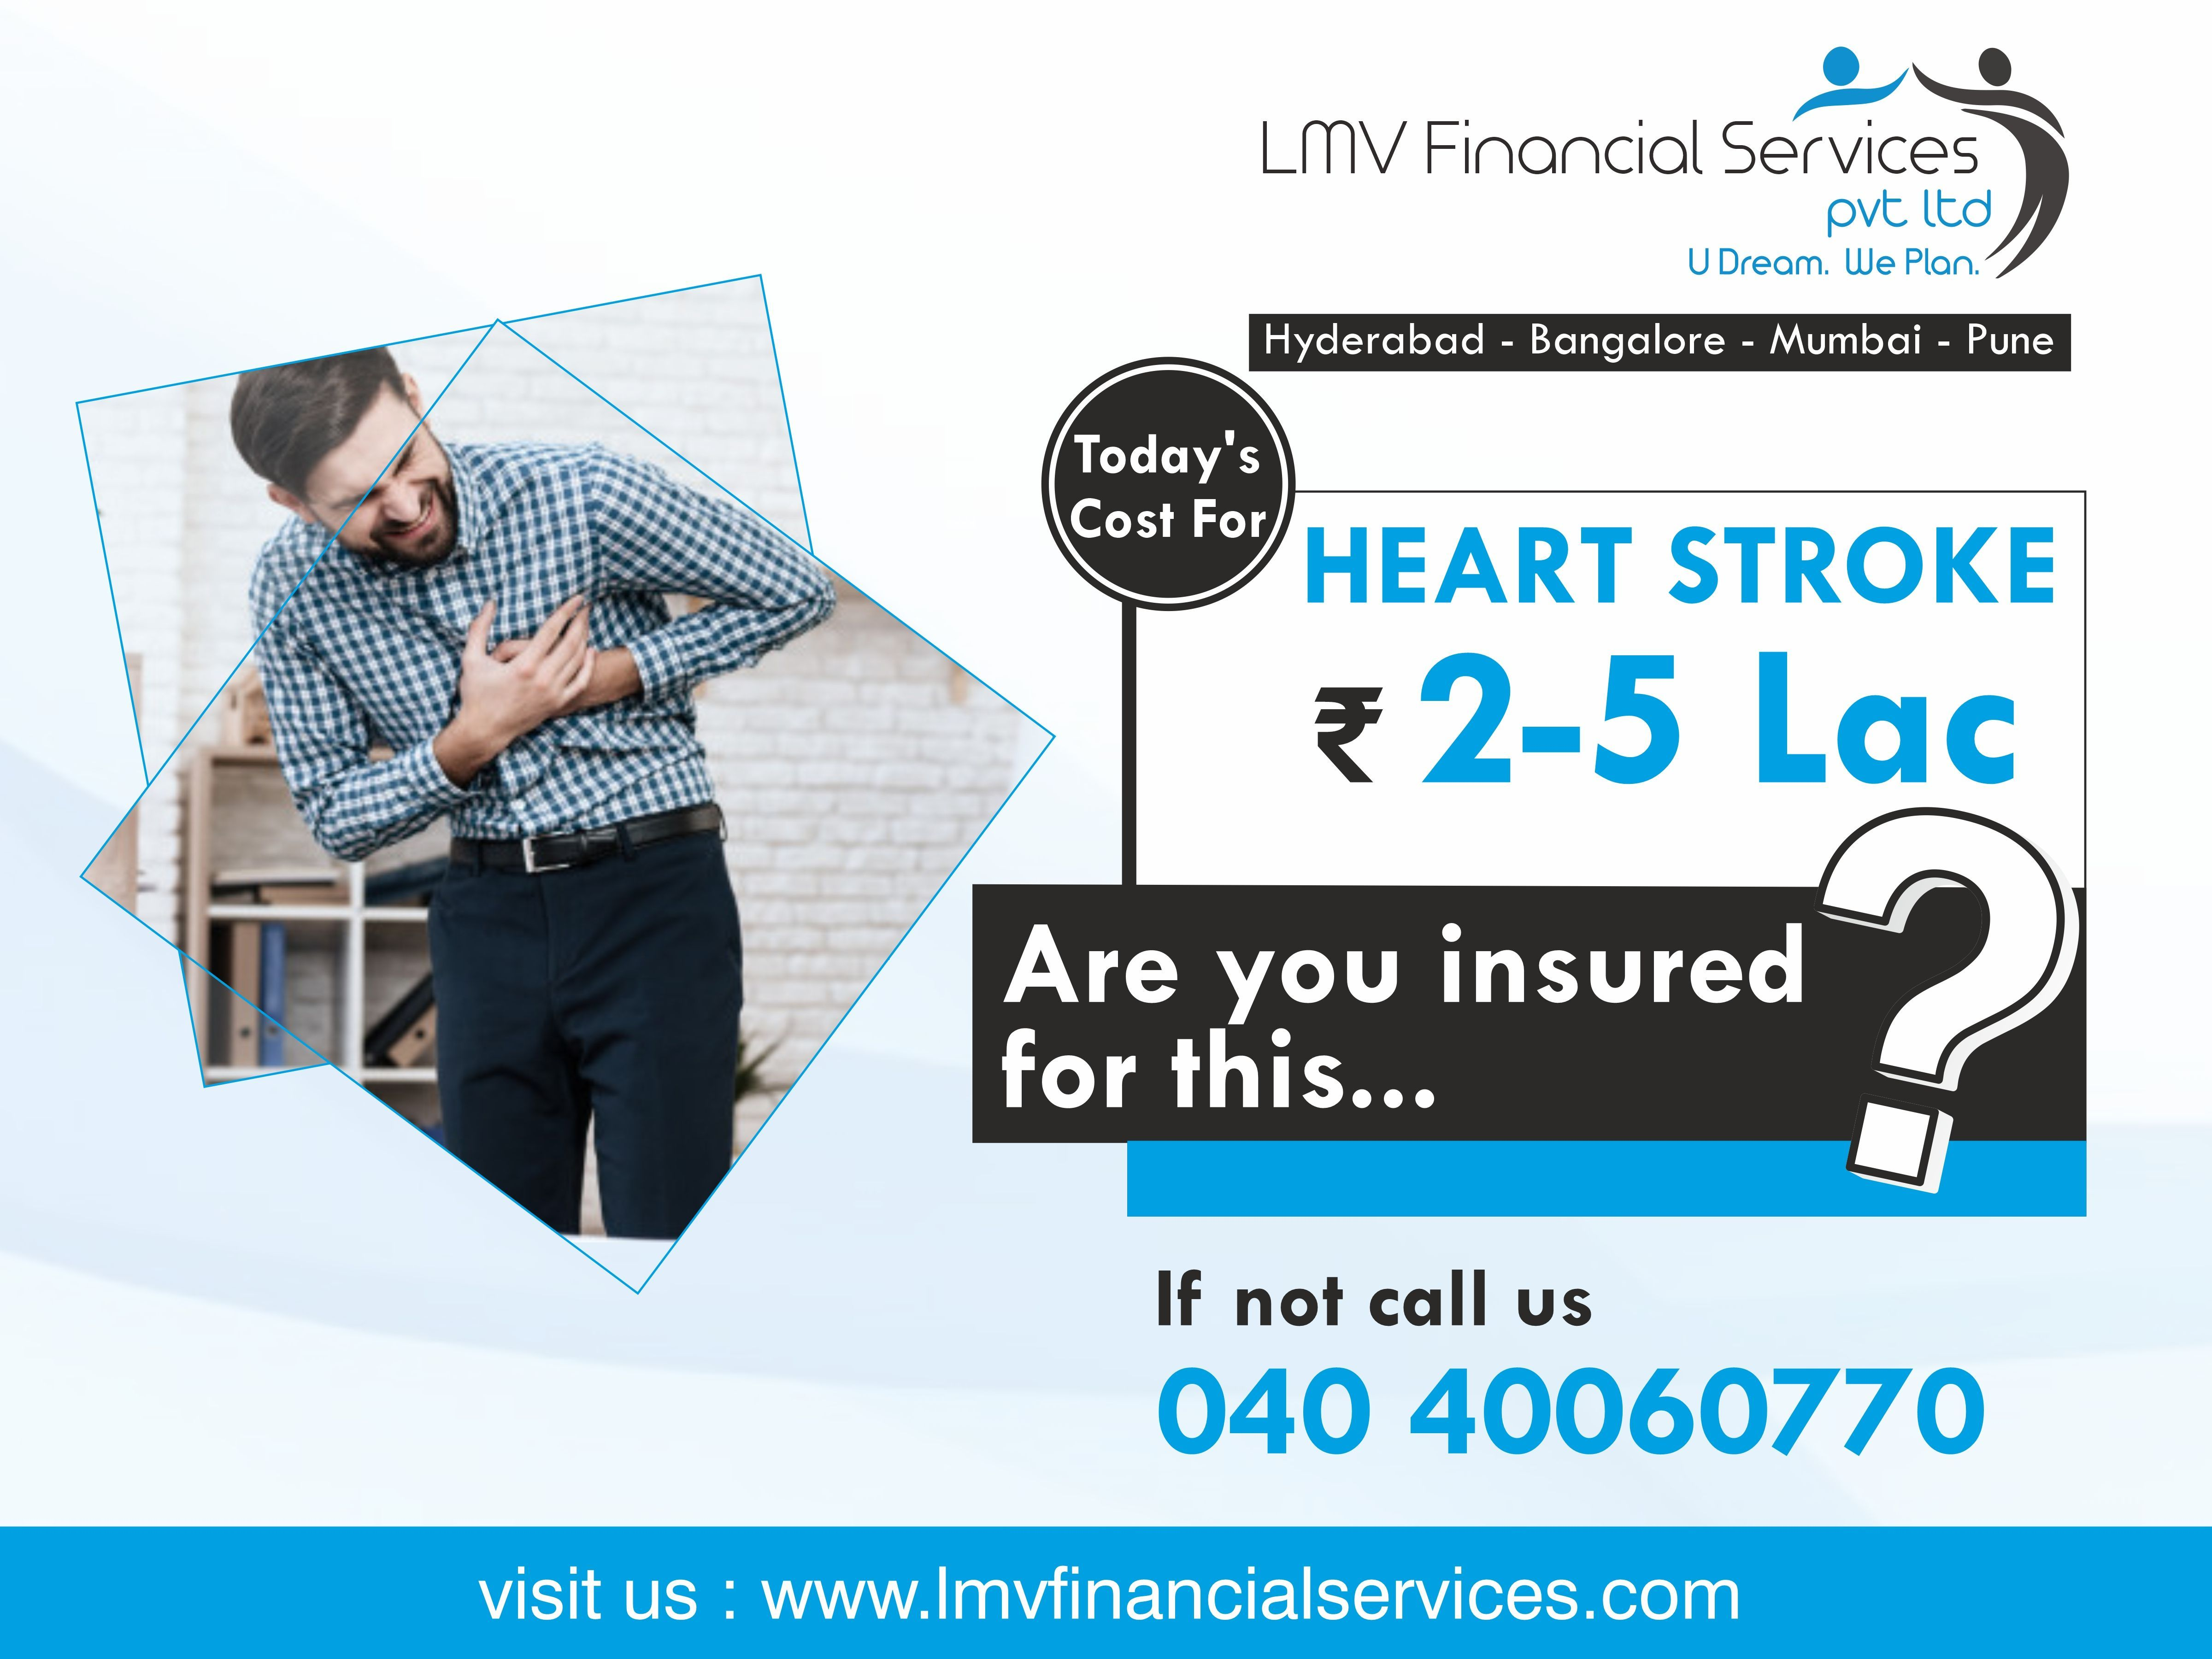 Health Insurance Services In Hyderabad Bangalore Mumbai Pune Lmv Financial Services Lmv Fi In 2020 Health Insurance Best Health Insurance Maternity Insurance